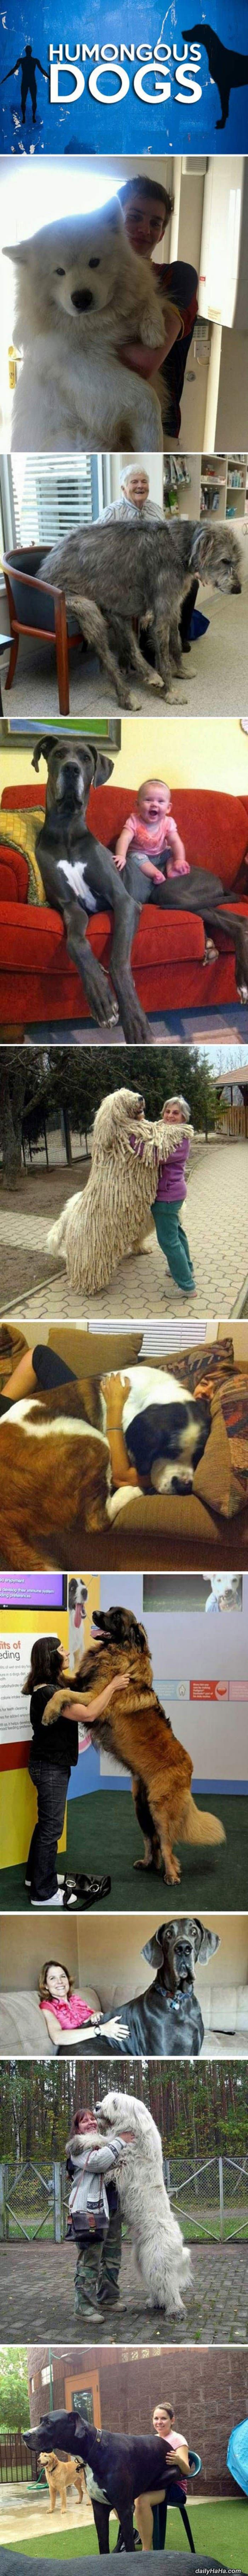 big dogs funny picture